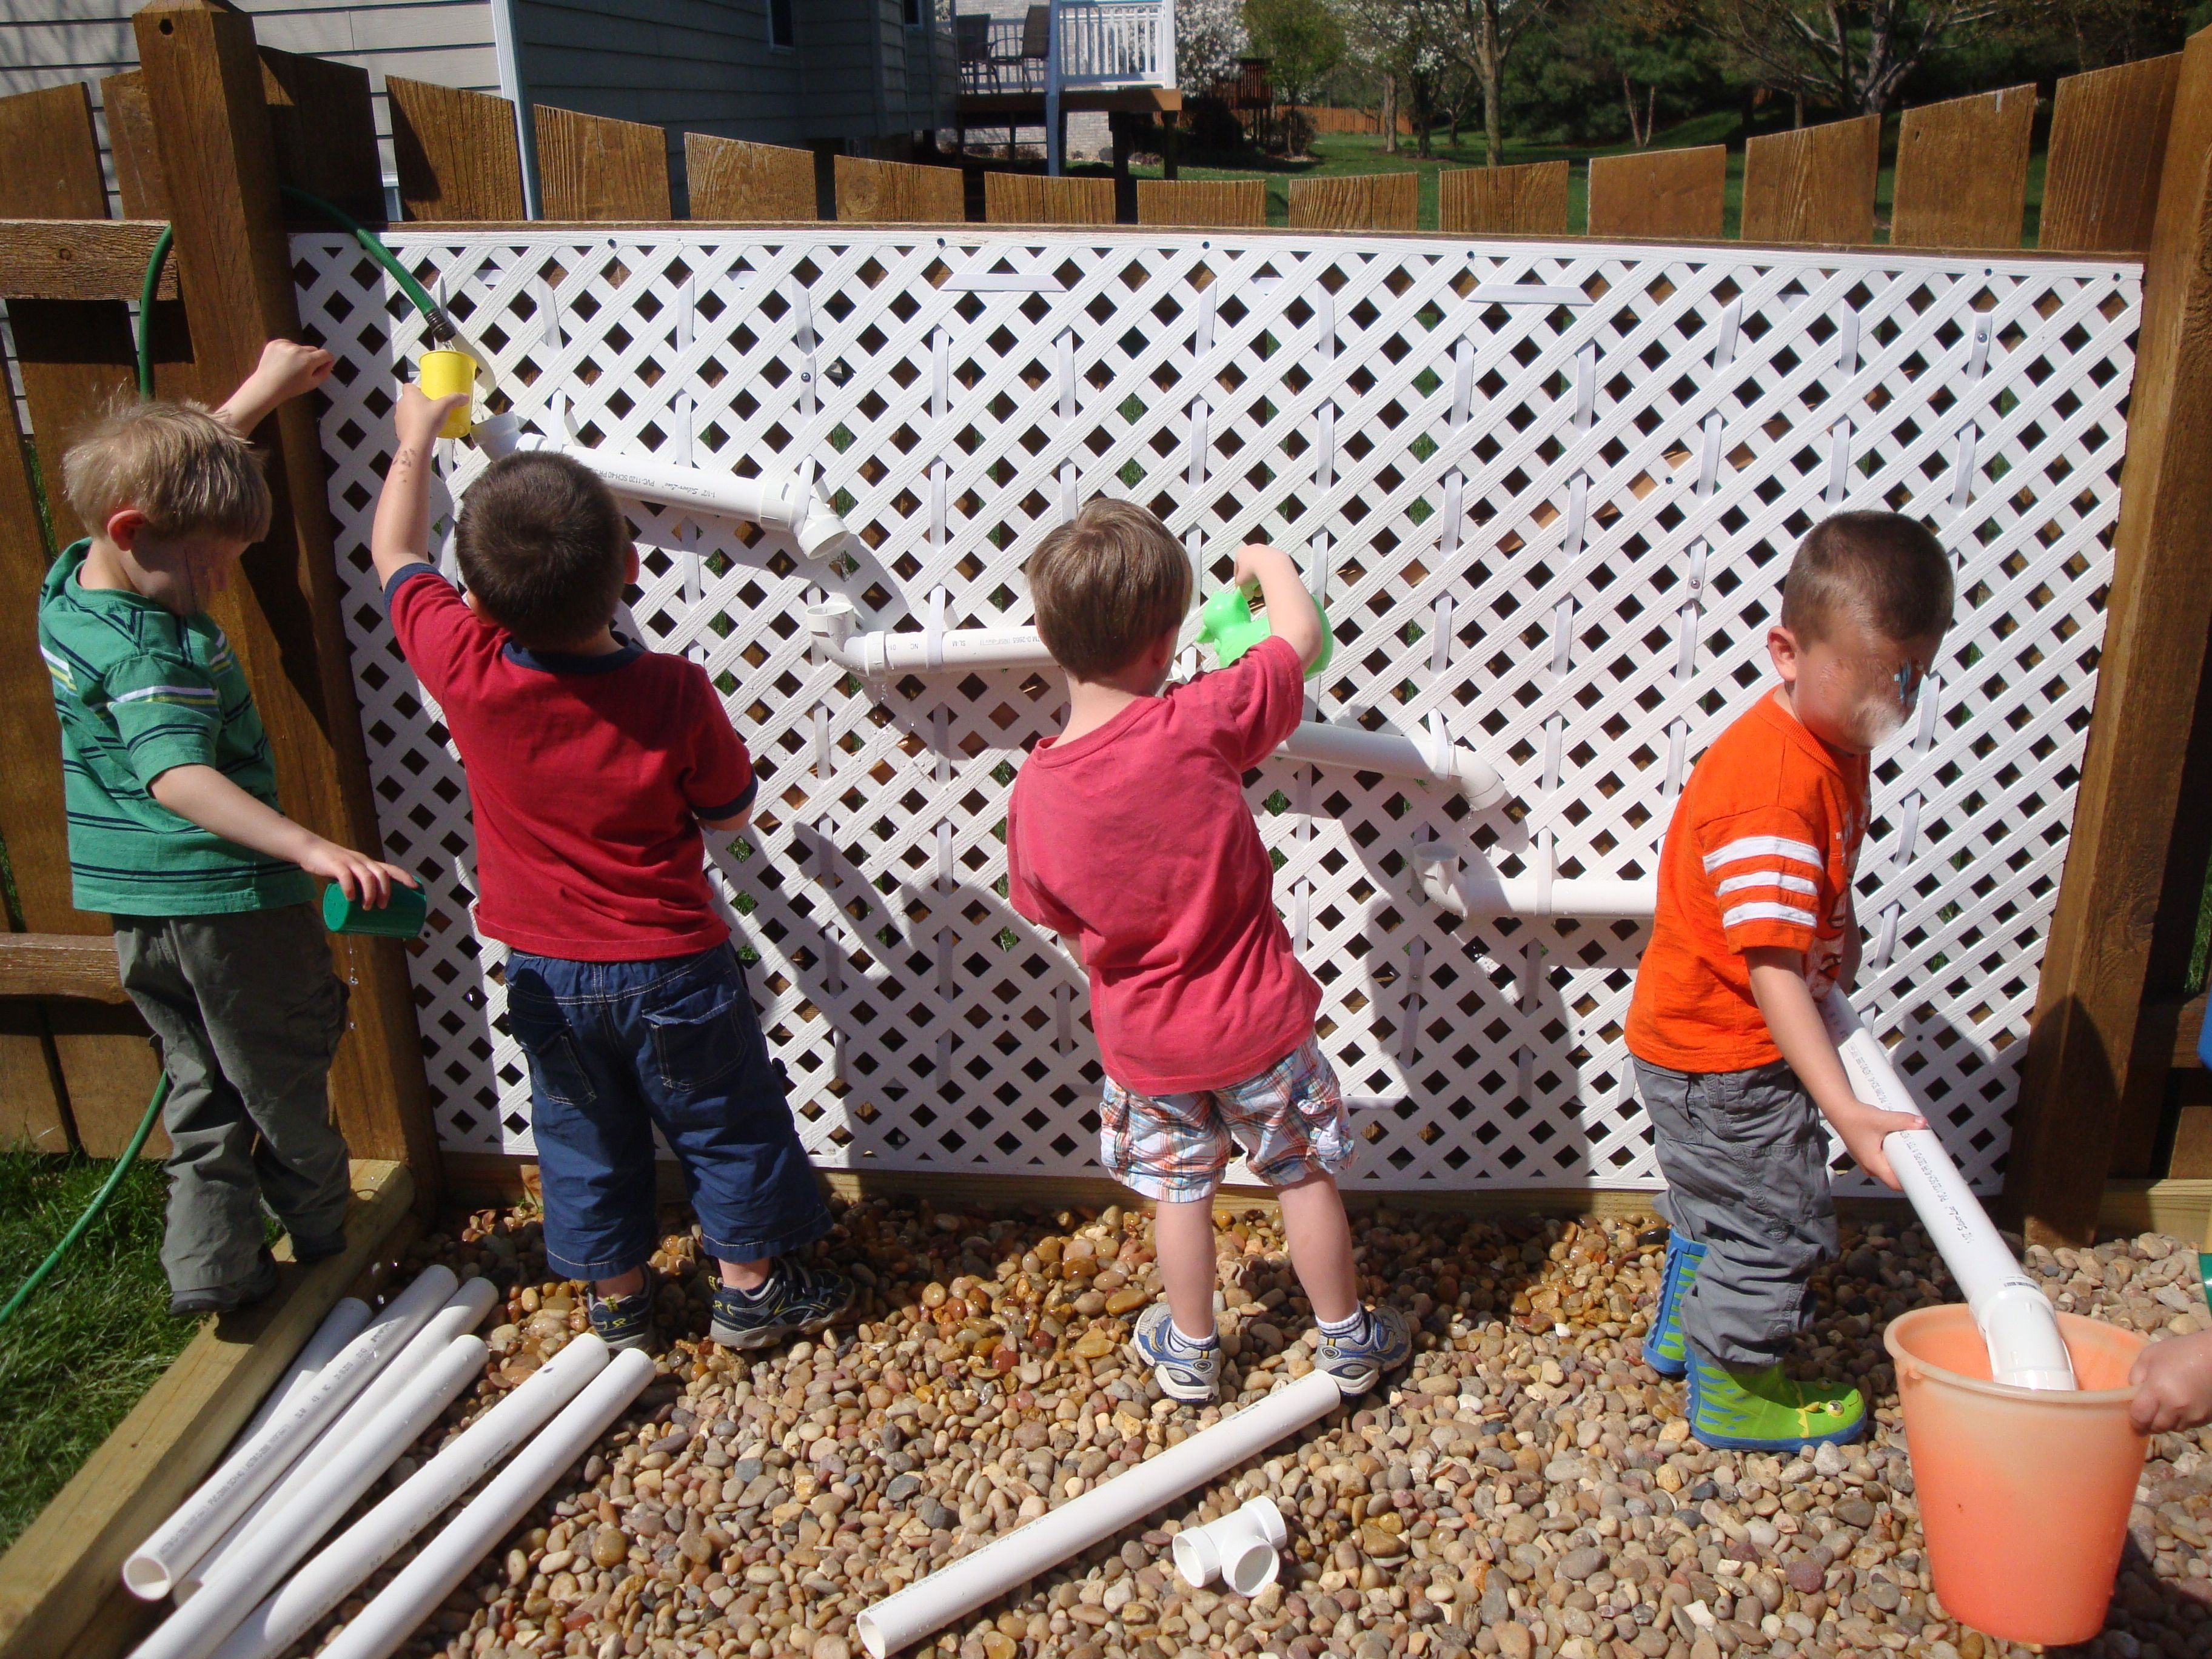 Diy patio water wall the interior frugalista diy patio water wall - Water Wall Pvc Pipes And Elastic Loops I Love This Water Wall The Kids